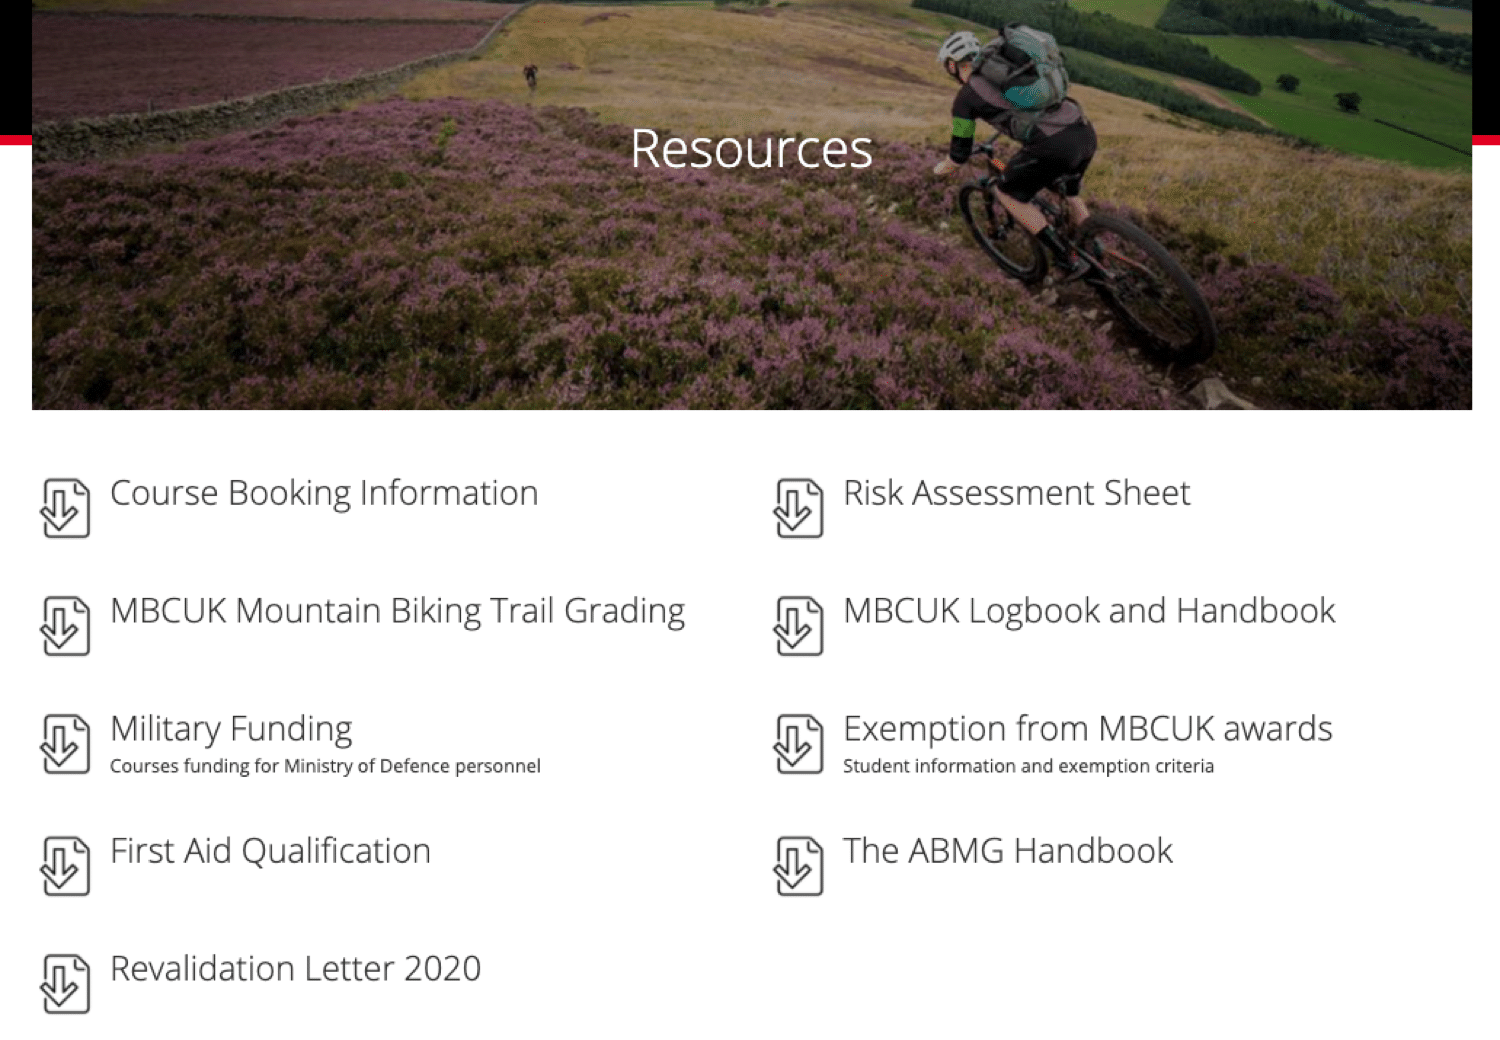 An example of a resource page (related to mountain biking) found using this search operator